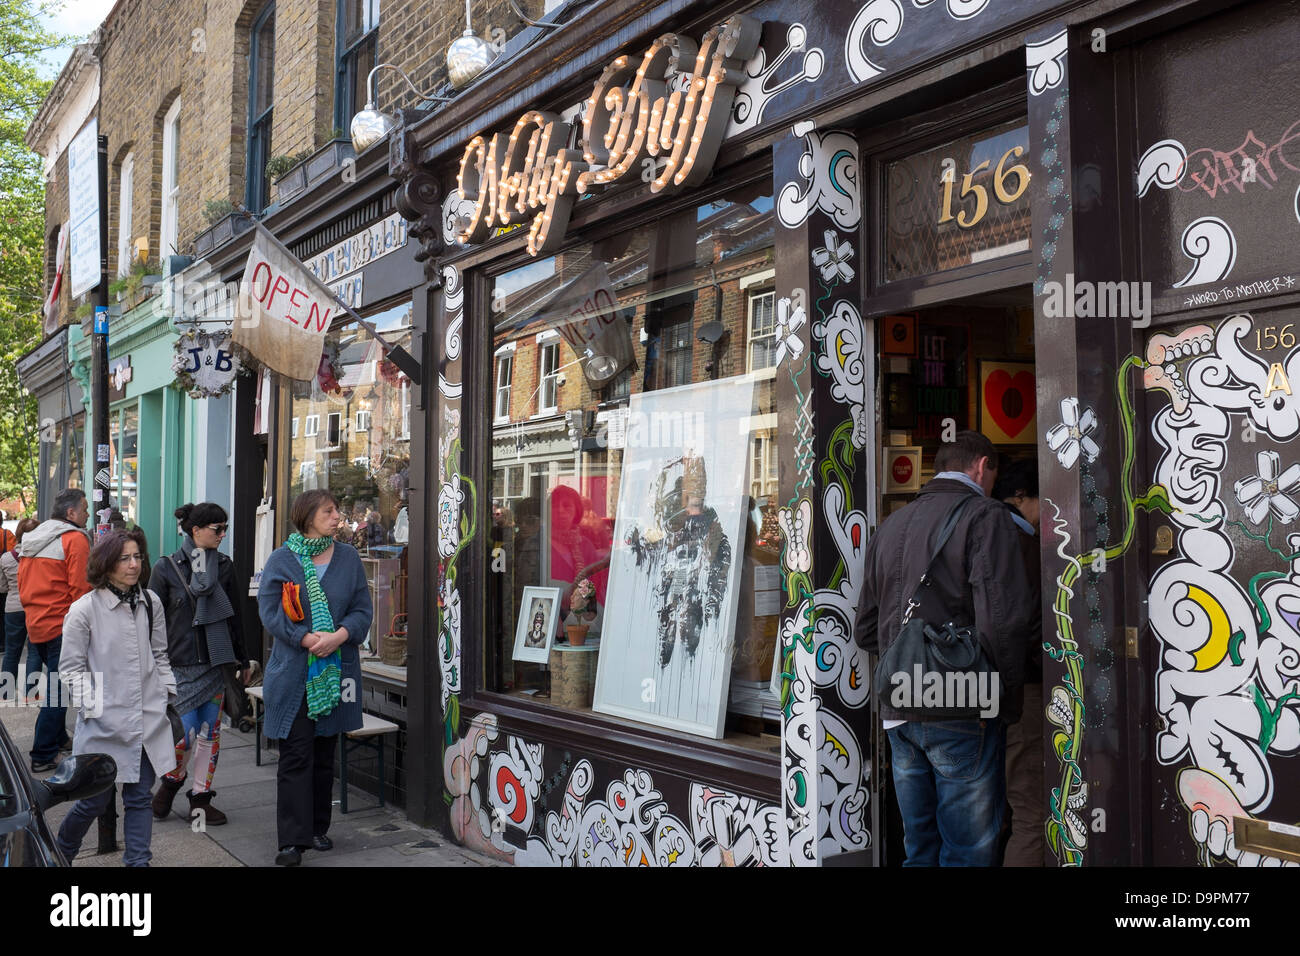 Nelly Duff Art Gallery Columbia Road London - Stock Image